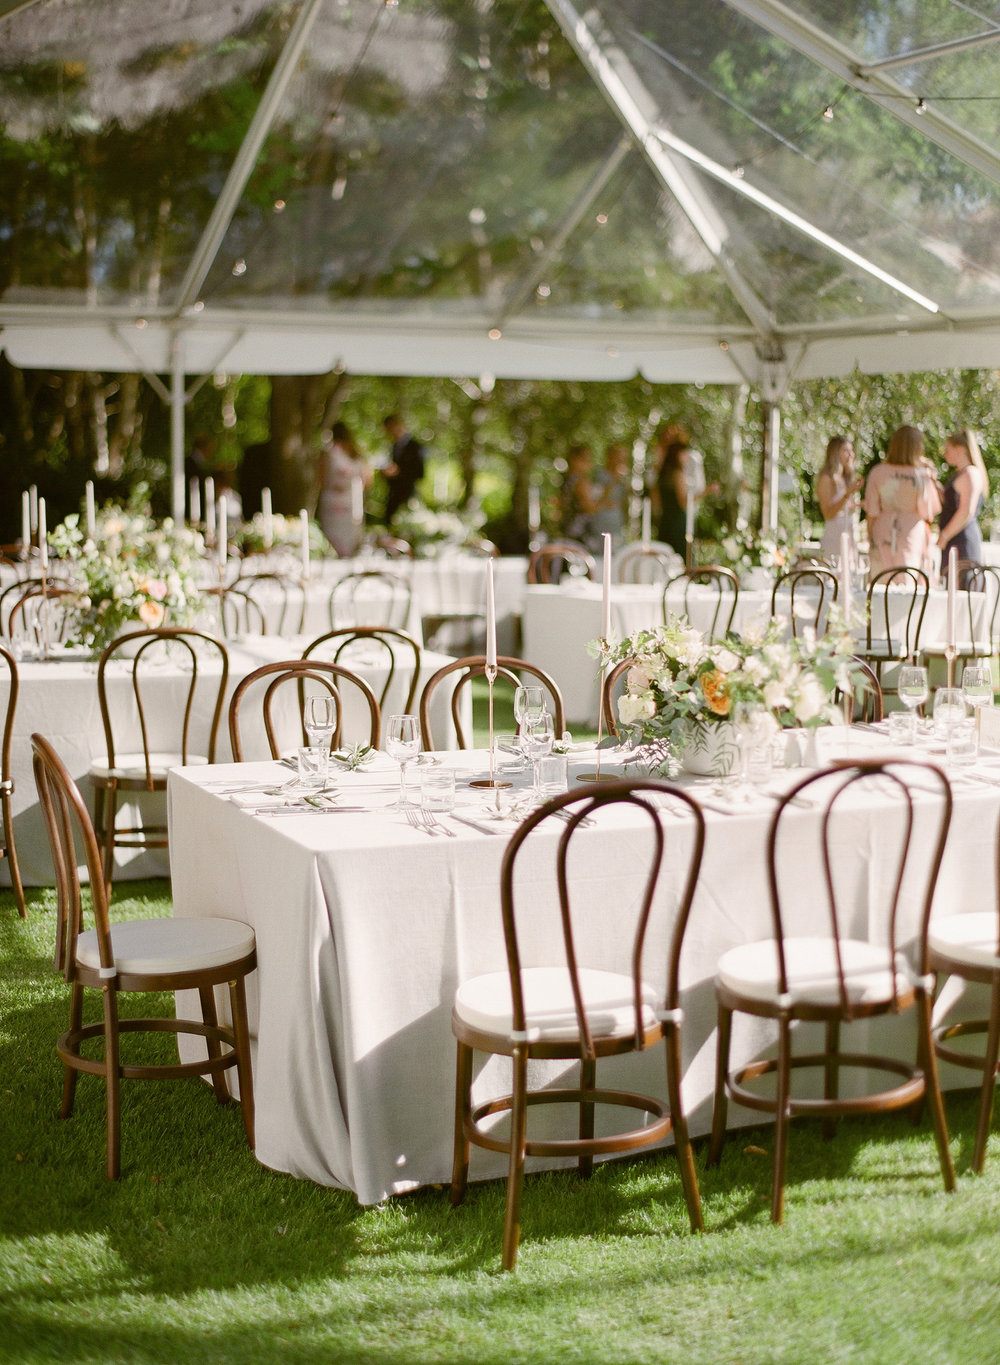 Aravella Event Design | Tree Elle Retreat Wedding | Photo by Jemma Keech Photography | Reception Space | Clear Marquee